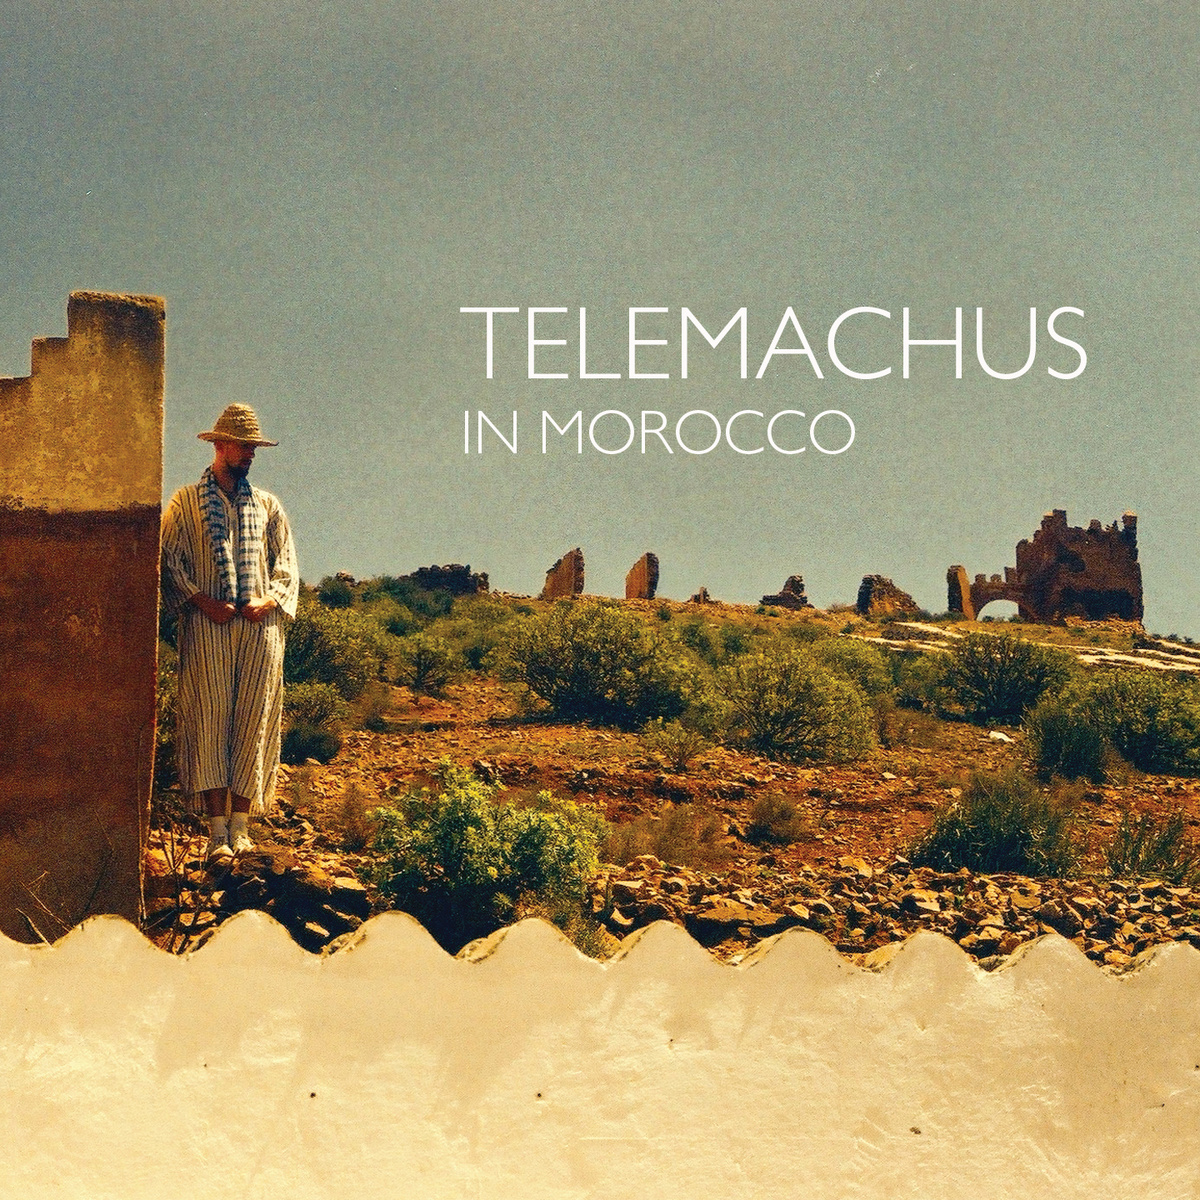 Telemachus_-_in_morocco